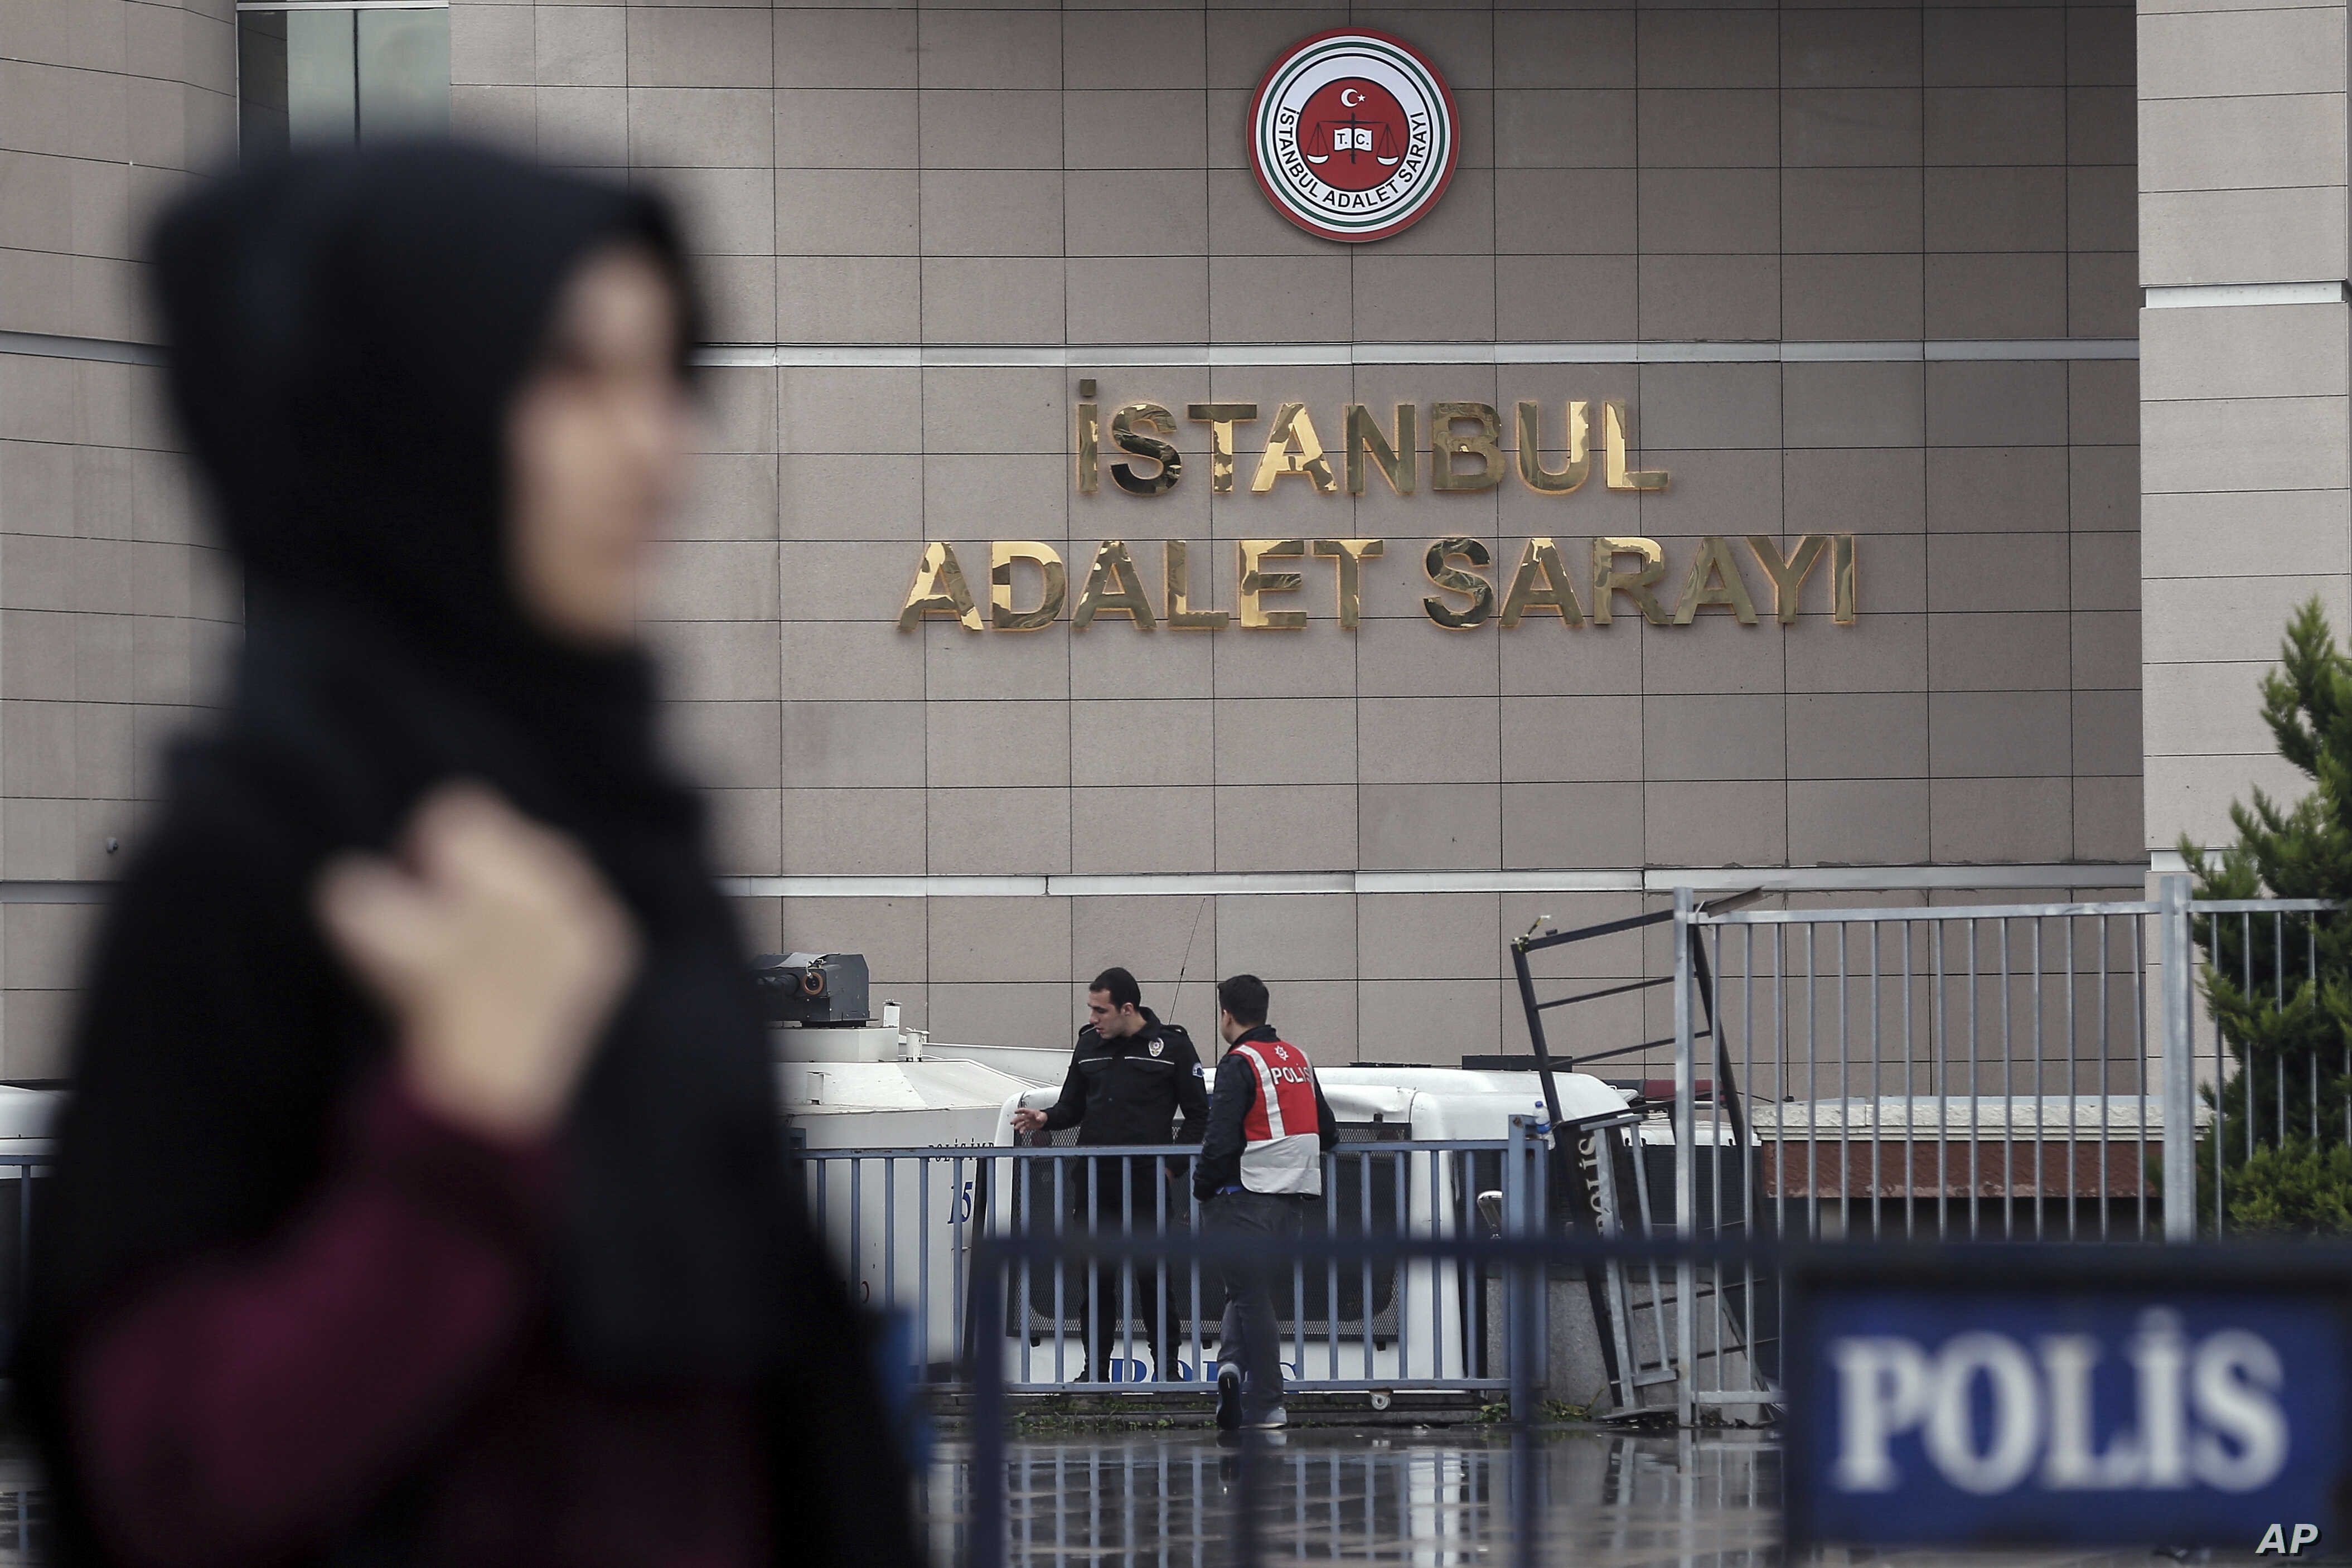 A woman walks along a security barricade outside the main courthouse in Istanbul, Turkey, Oct. 24, 2017.